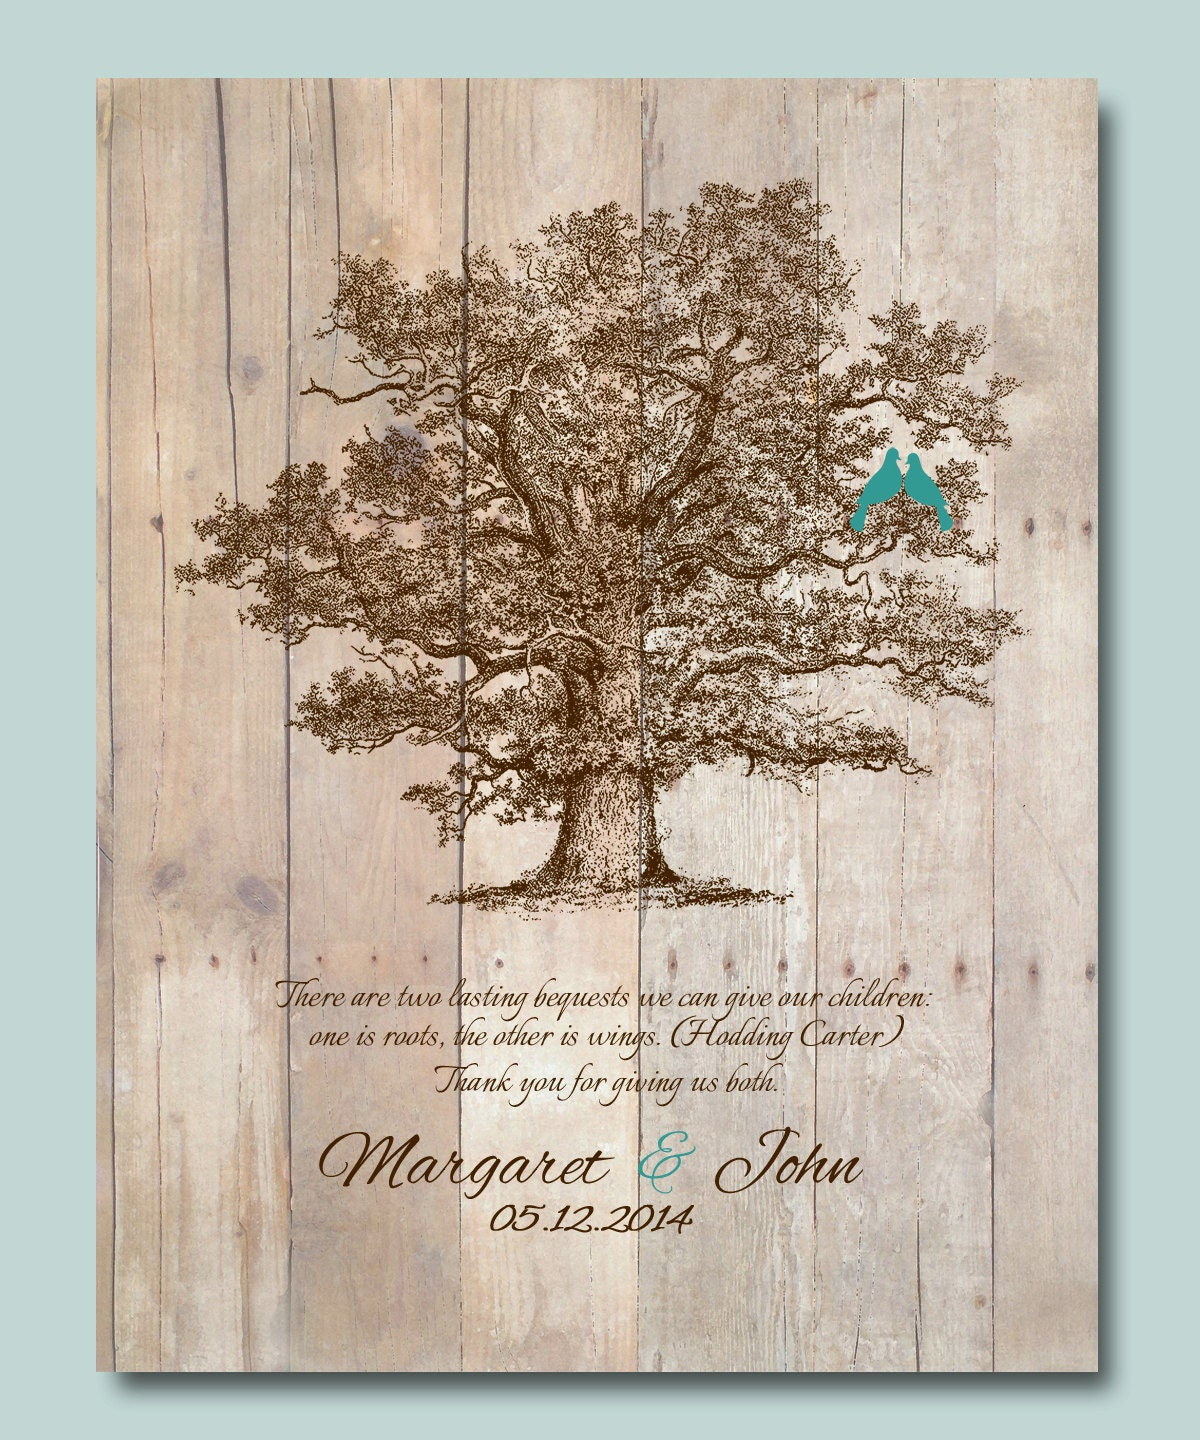 Thanks For The Wedding Gift: Wedding Gift For Parents From Bride And Groom Thank You Gift